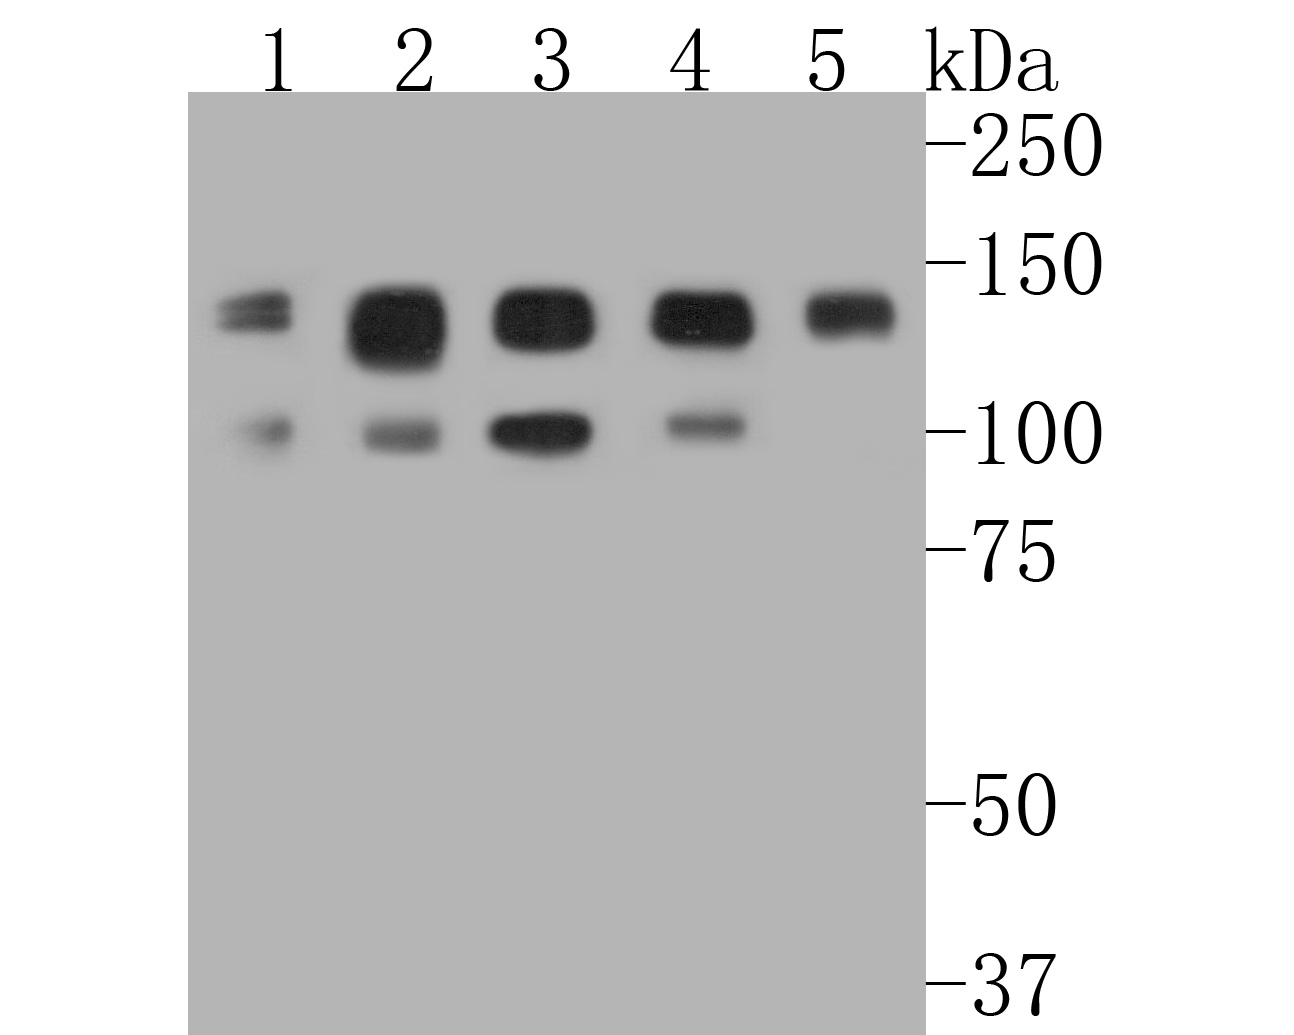 Western blot analysis of TFII I on different lysates. Proteins were transferred to a PVDF membrane and blocked with 5% BSA in PBS for 1 hour at room temperature. The primary antibody (ET7111-10, 1/1,000) was used in 5% BSA at room temperature for 2 hours. Goat Anti-Rabbit IgG - HRP Secondary Antibody (HA1001) at 1:5,000 dilution was used for 1 hour at room temperature.<br /> Positive control: <br /> Lane 1: A431 cell lysate<br /> Lane 2: Jurkat cell lysate<br /> Lane 3: Hela cell lysate<br /> Lane 4: MCF-7 cell lysate<br /> Lane 5: PC-12 cell lysate